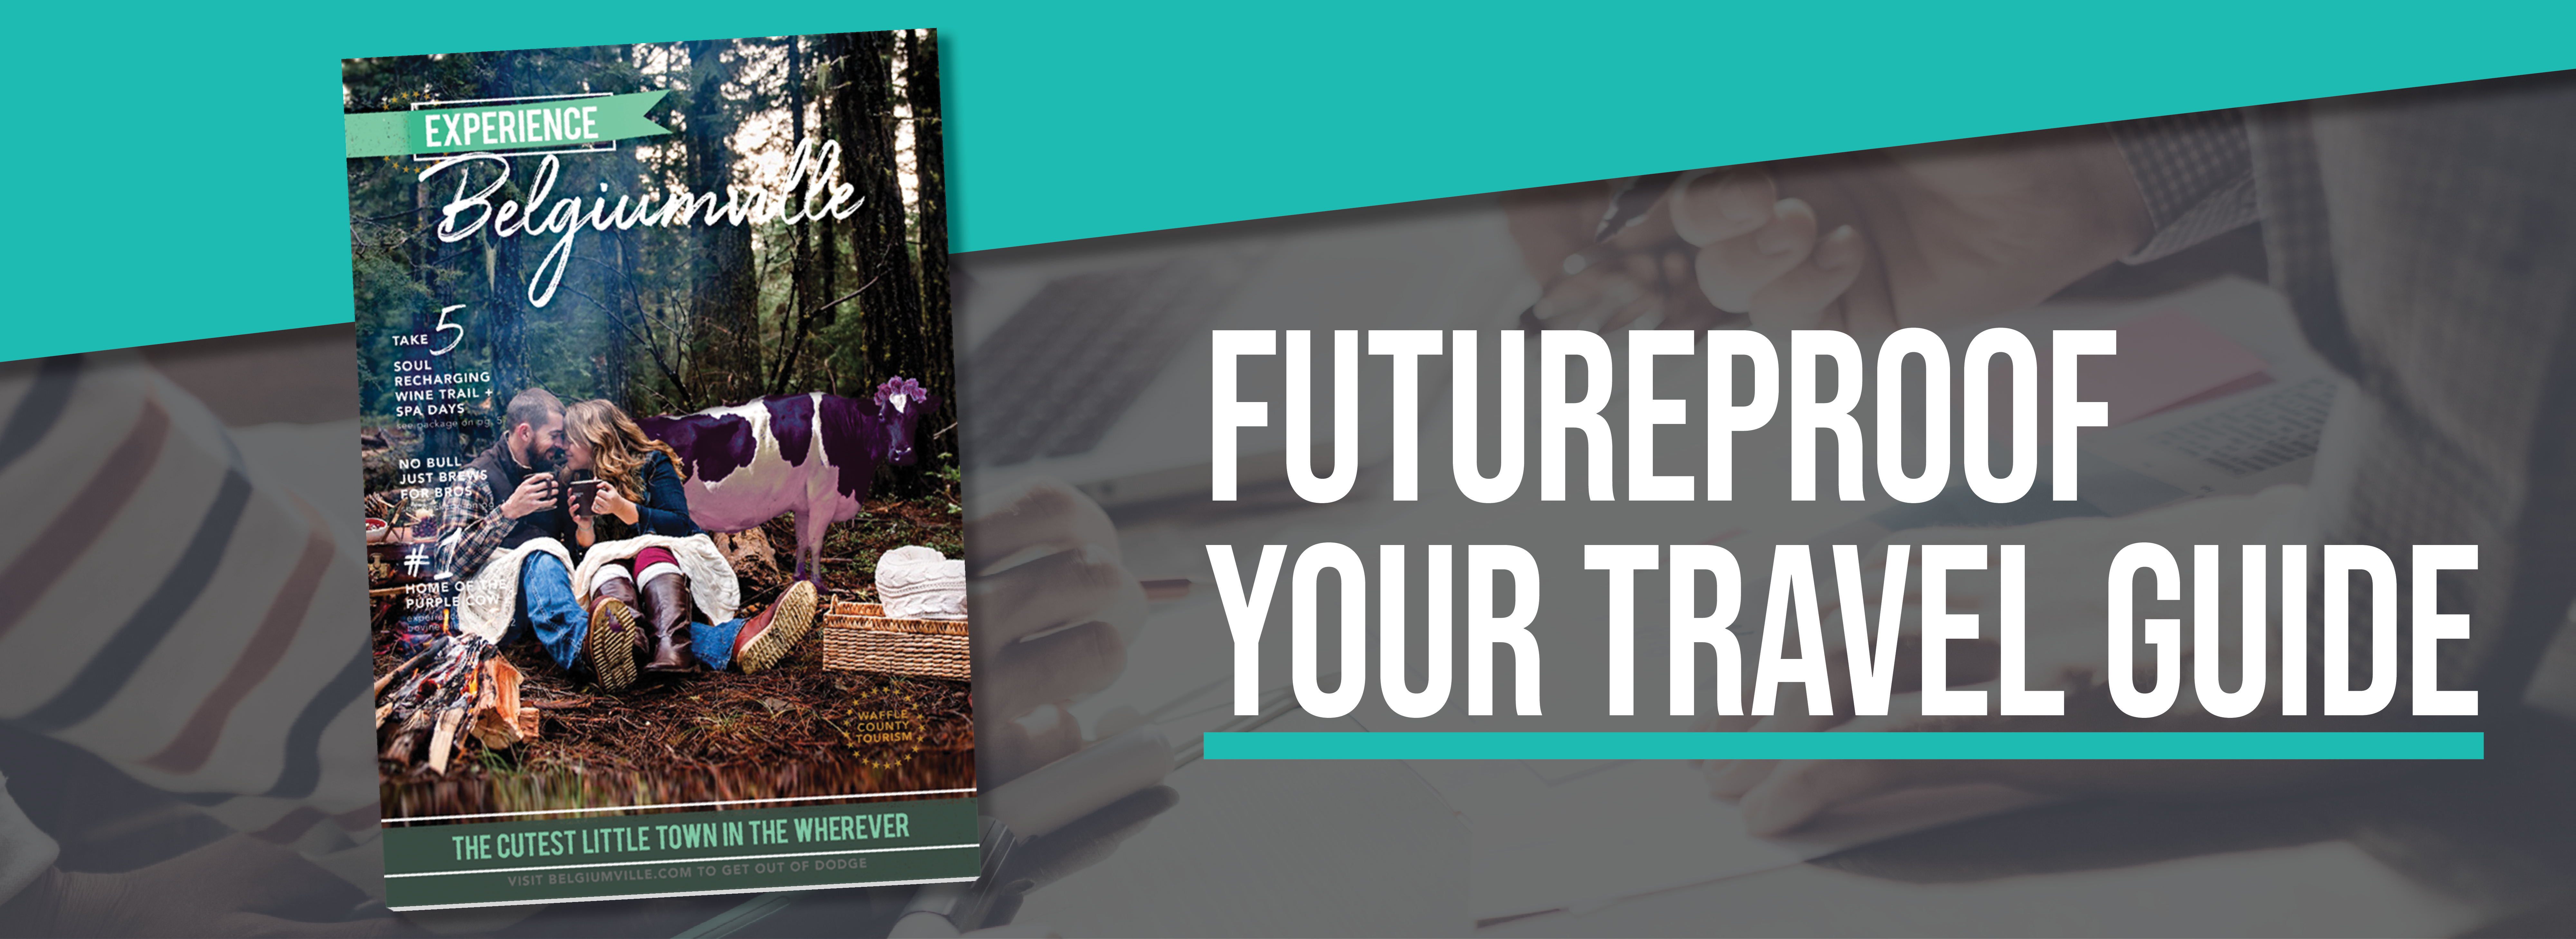 travel guide of the future